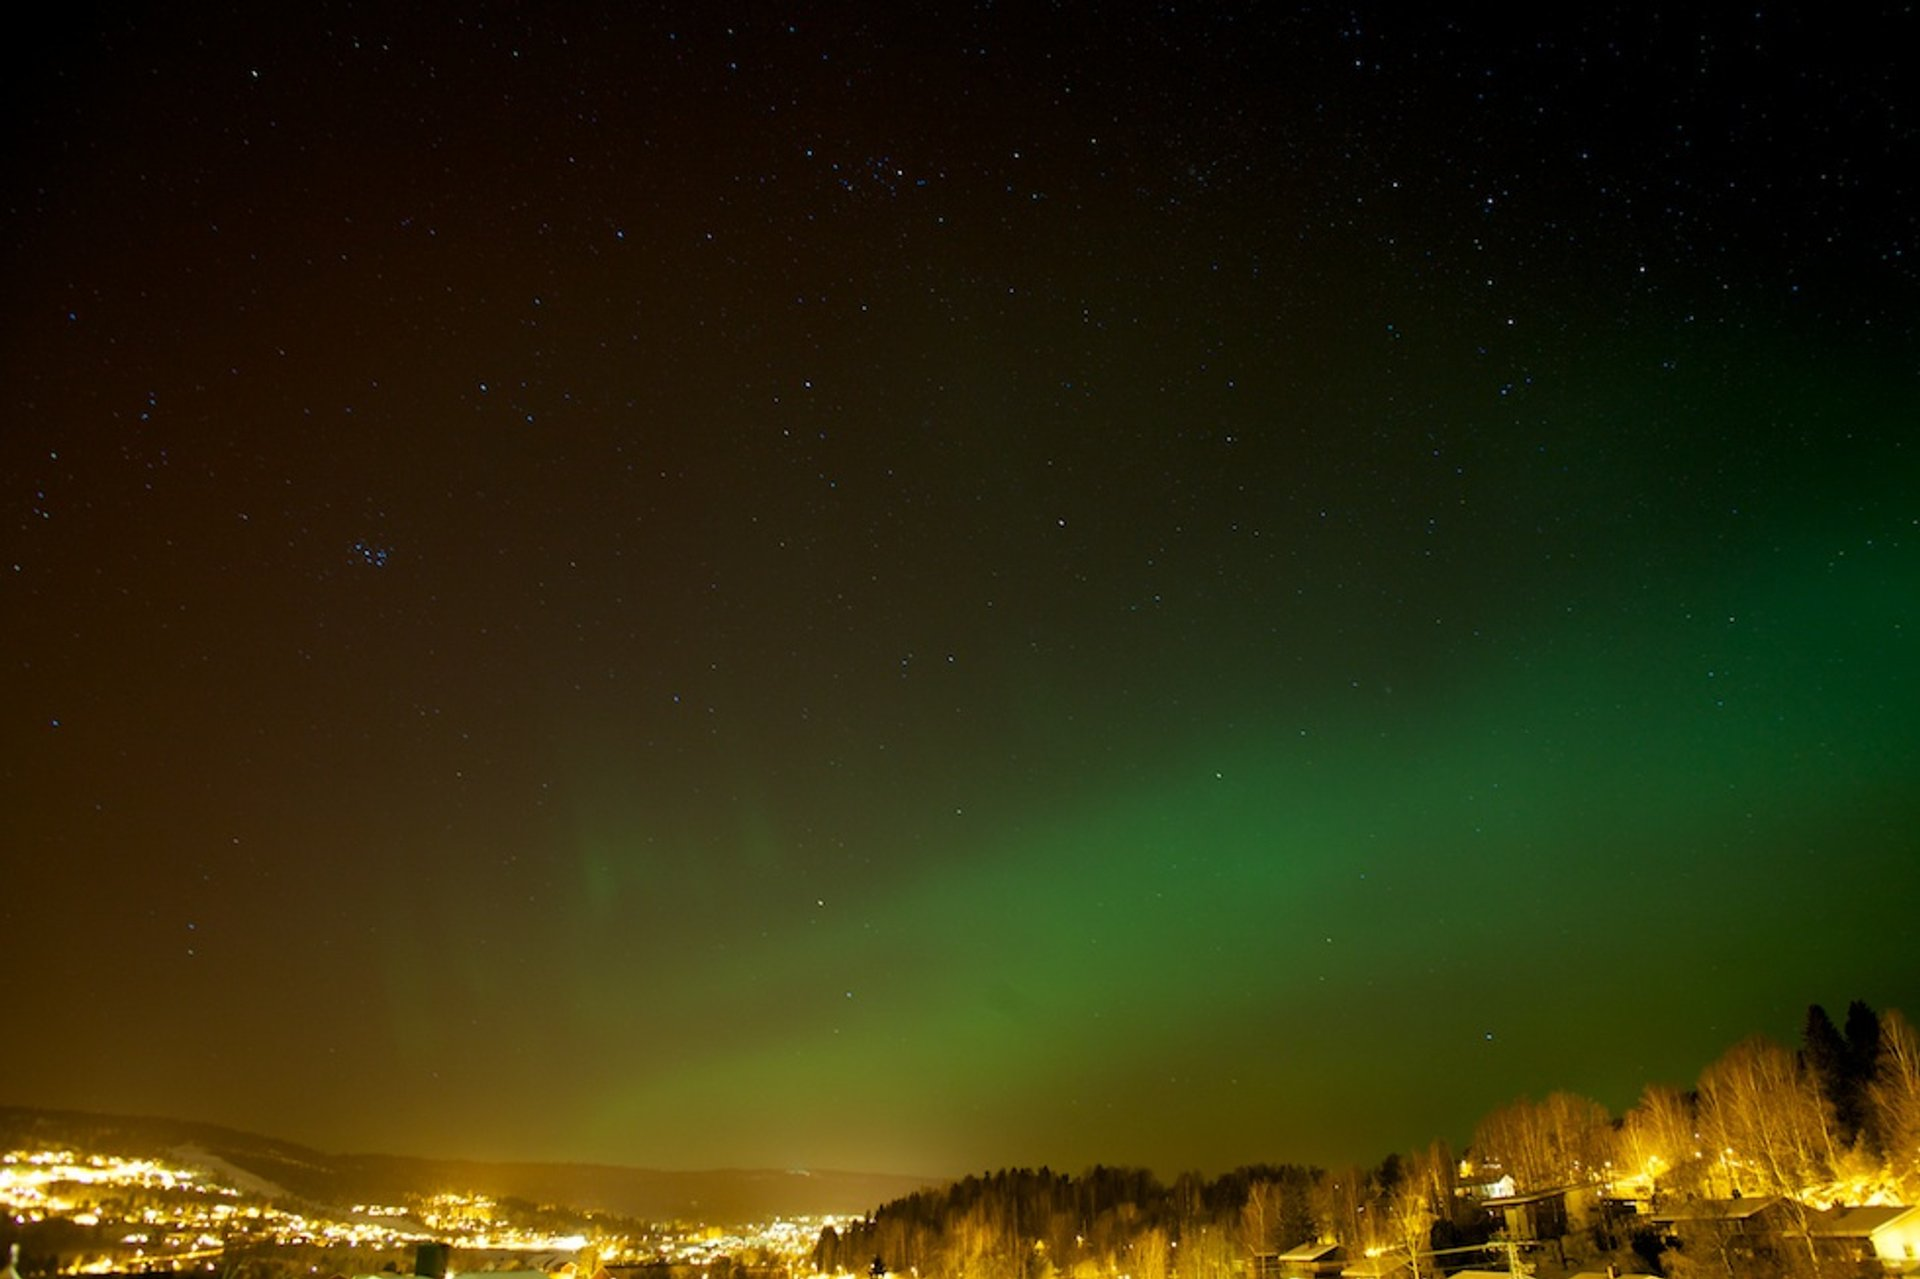 Aurora Borealis viewed from Lommedalen, near Oslo 2020